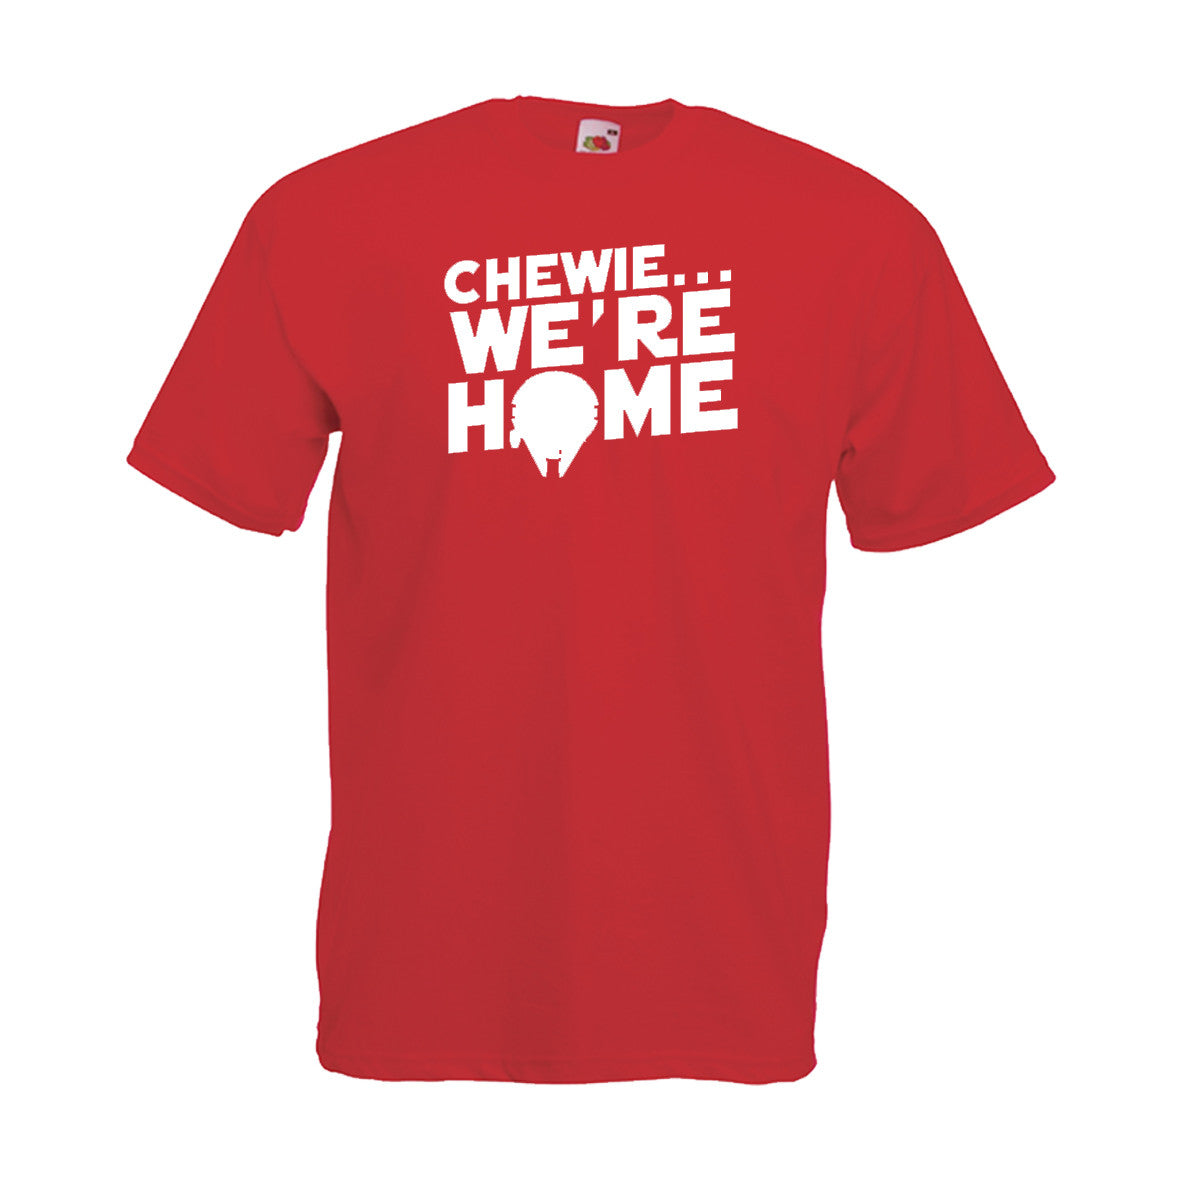 5c188f83 We're Home Chewie – CENTRAL T-SHIRTS